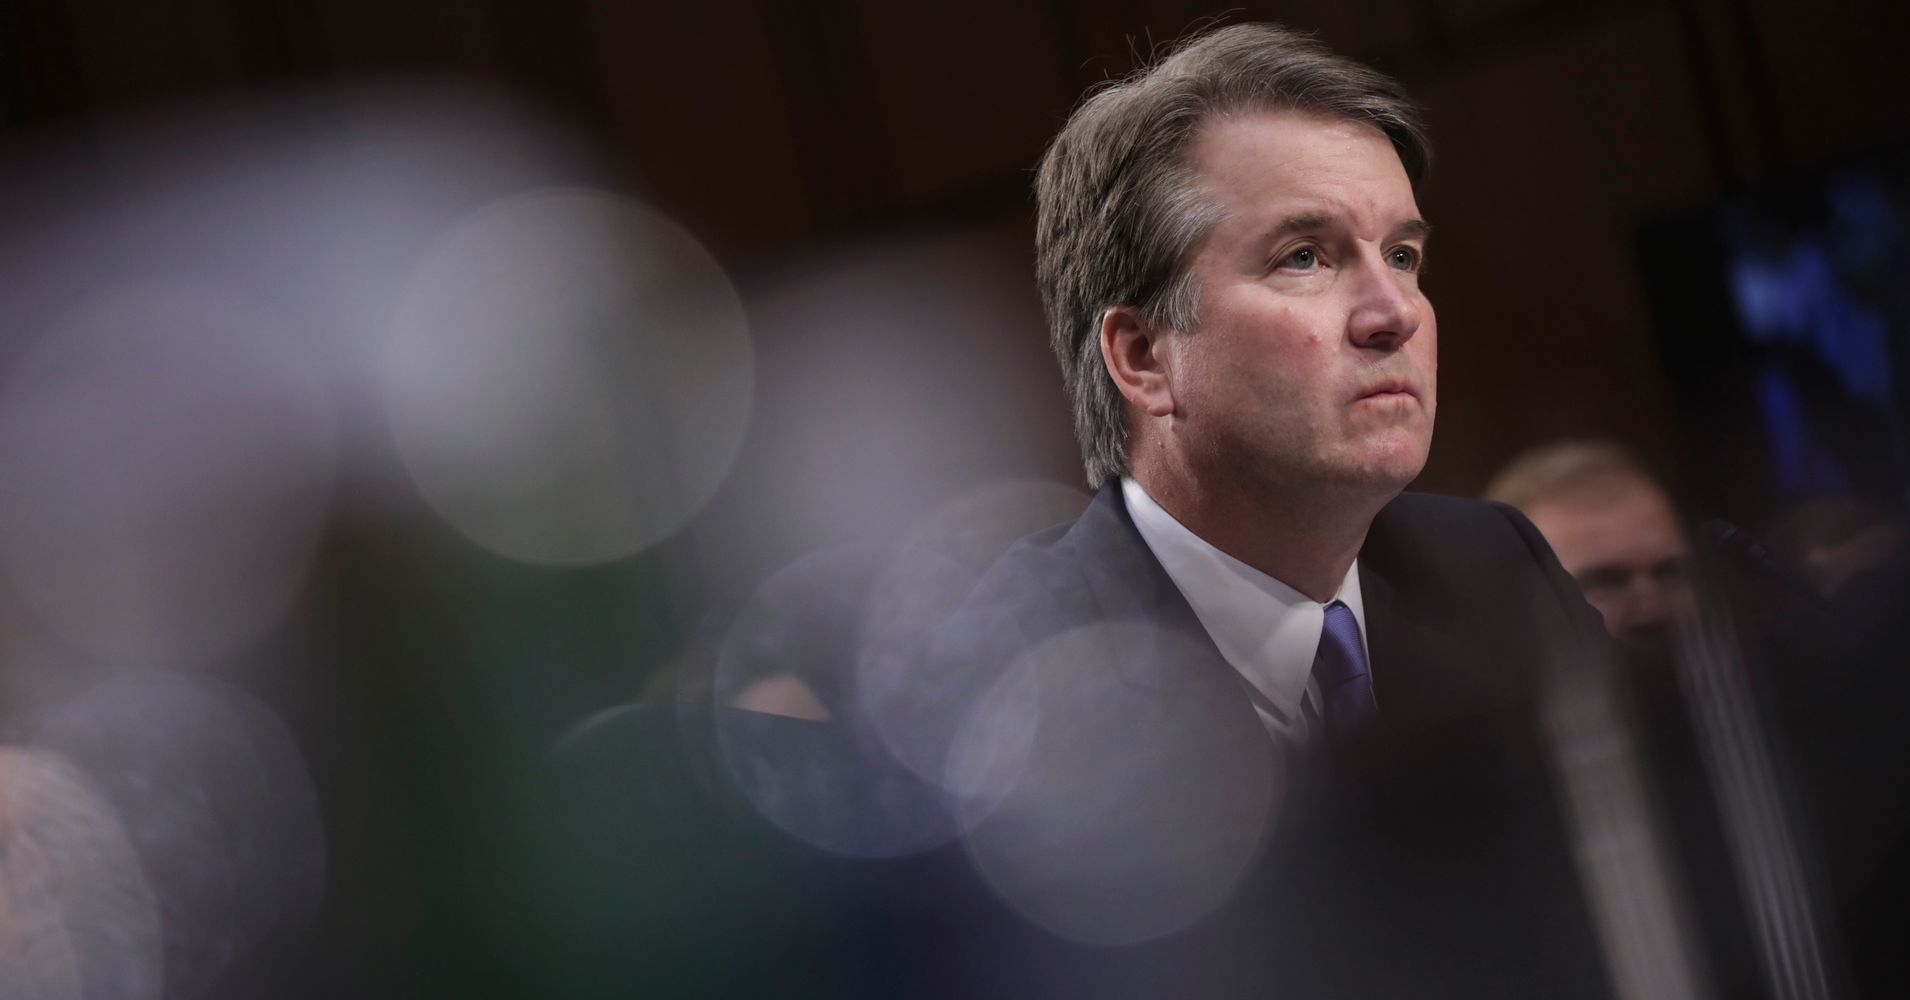 Brett Kavanaugh Refers To Birth Control As 'Abortion-Inducing Drugs' At Confirmation Hearing